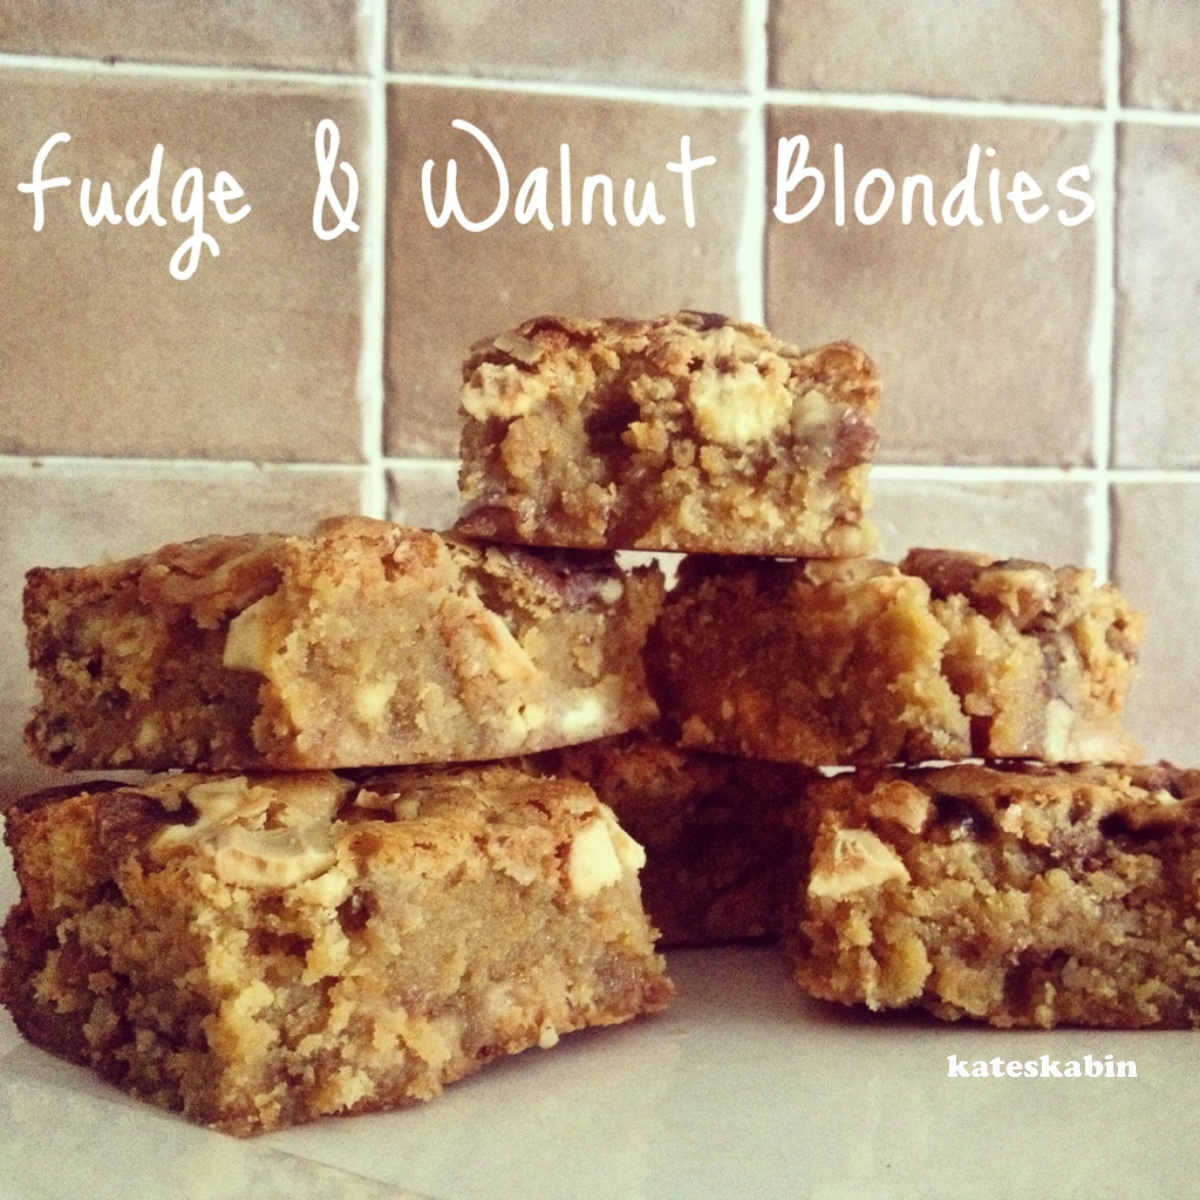 Fudge & Walnut Blondies